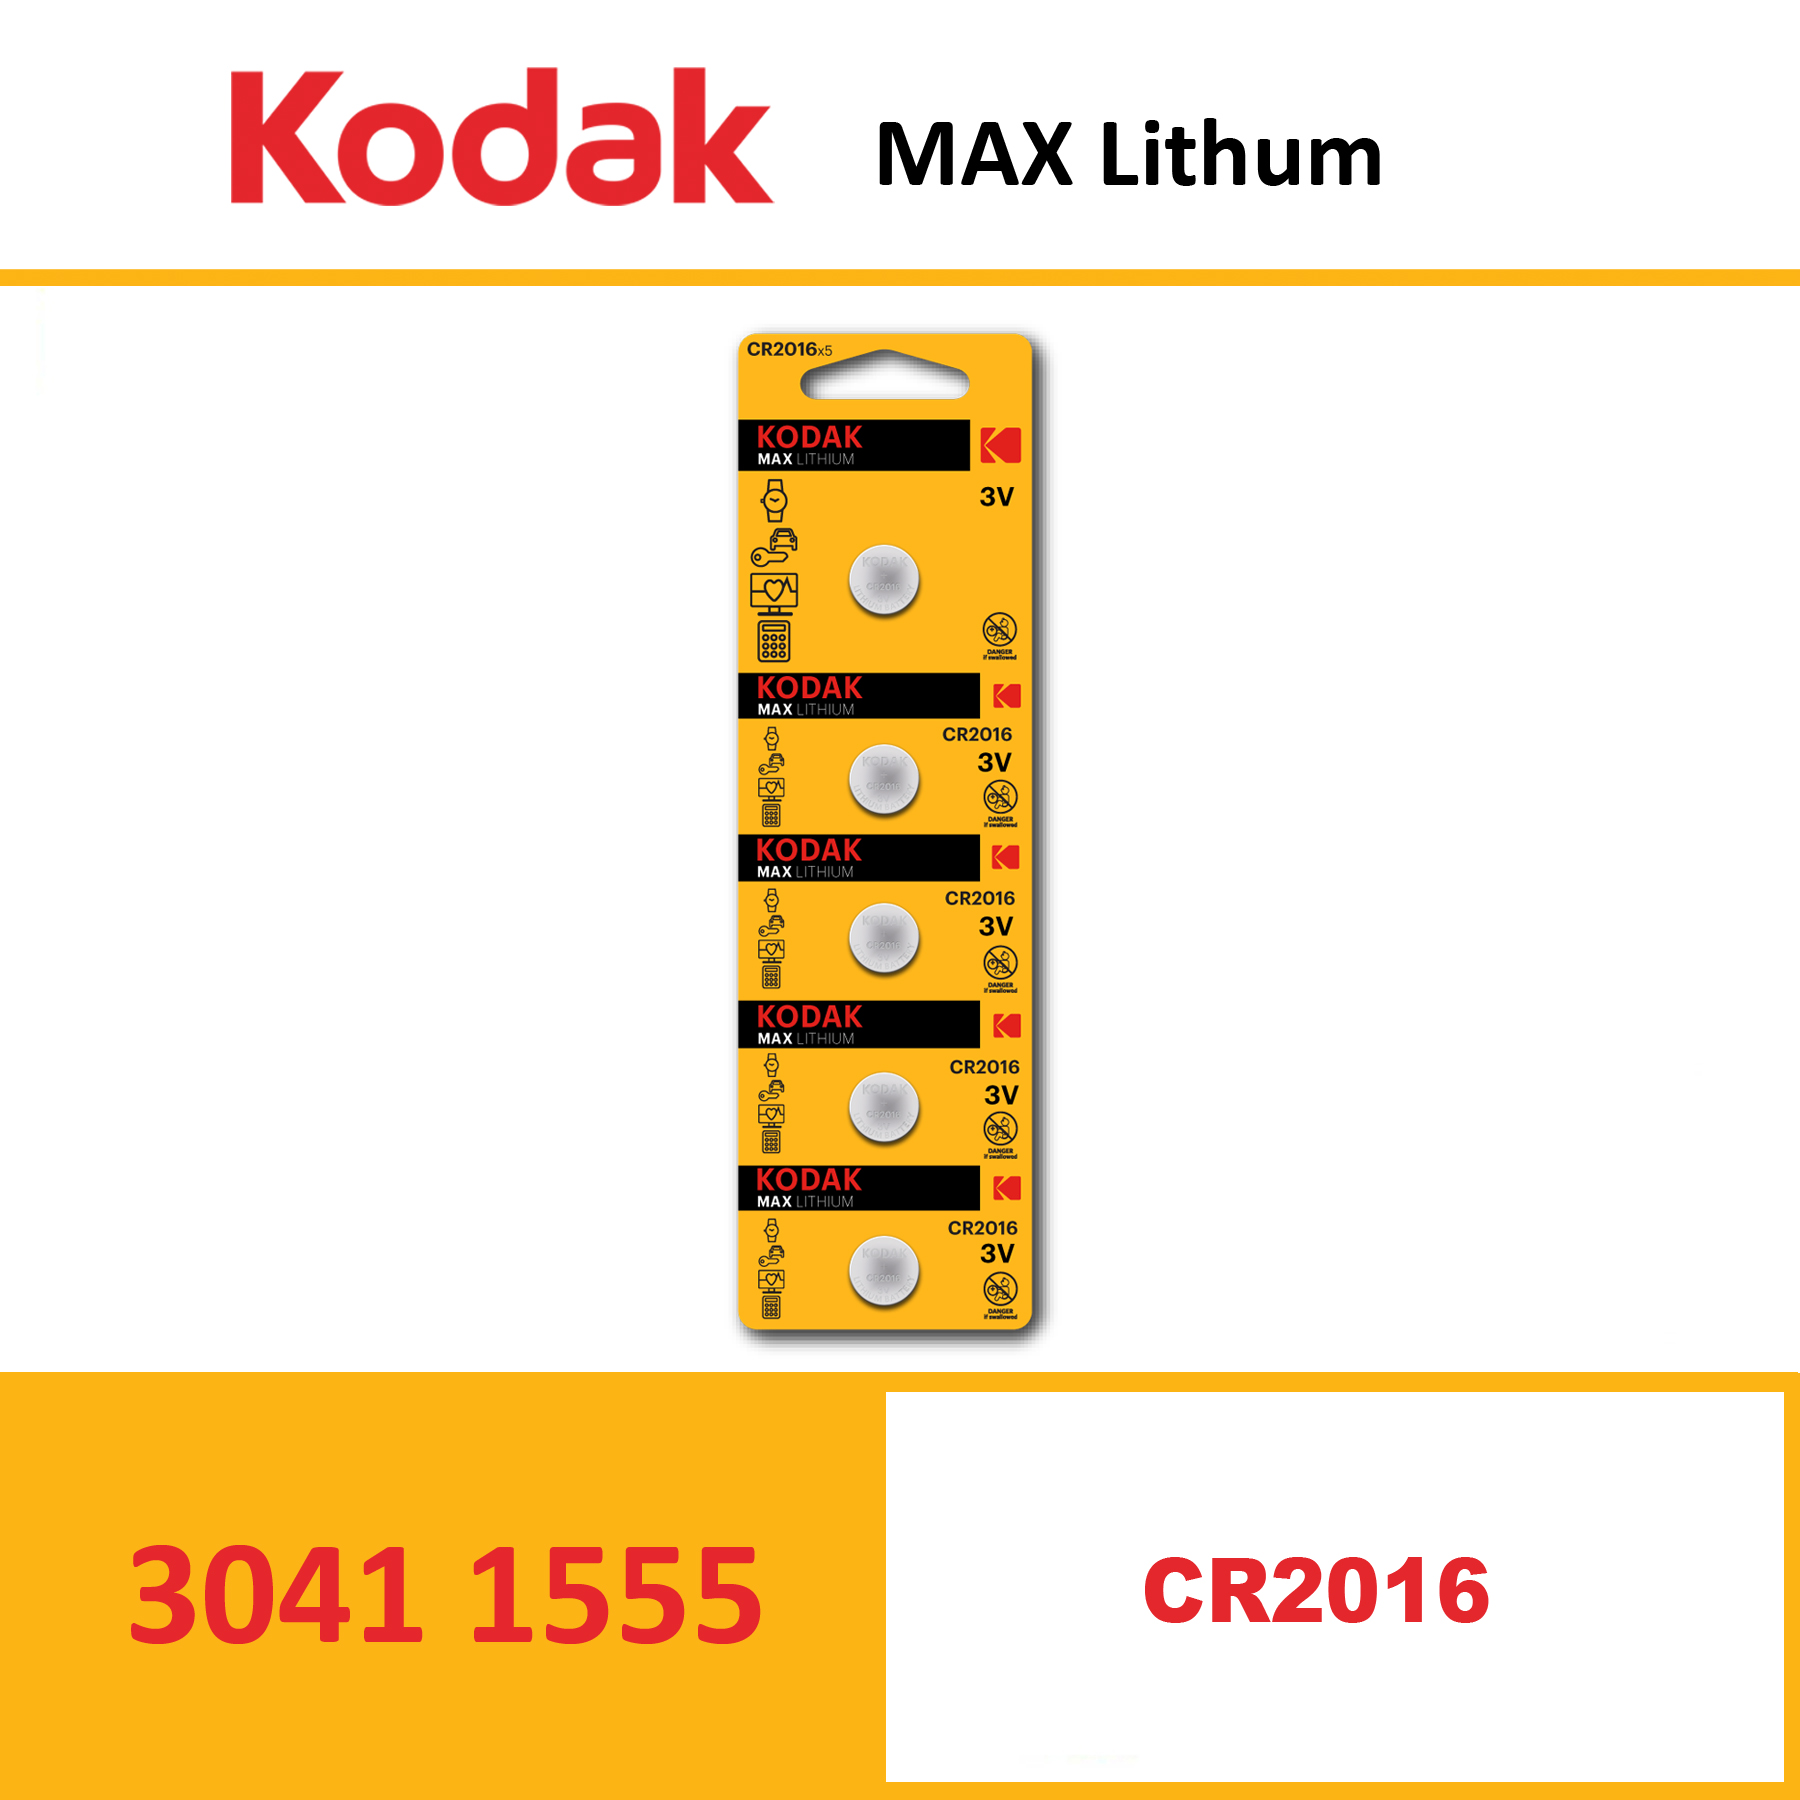 KODAK KCR2016 MAX Lithium coin cell Pack of 5 Piece